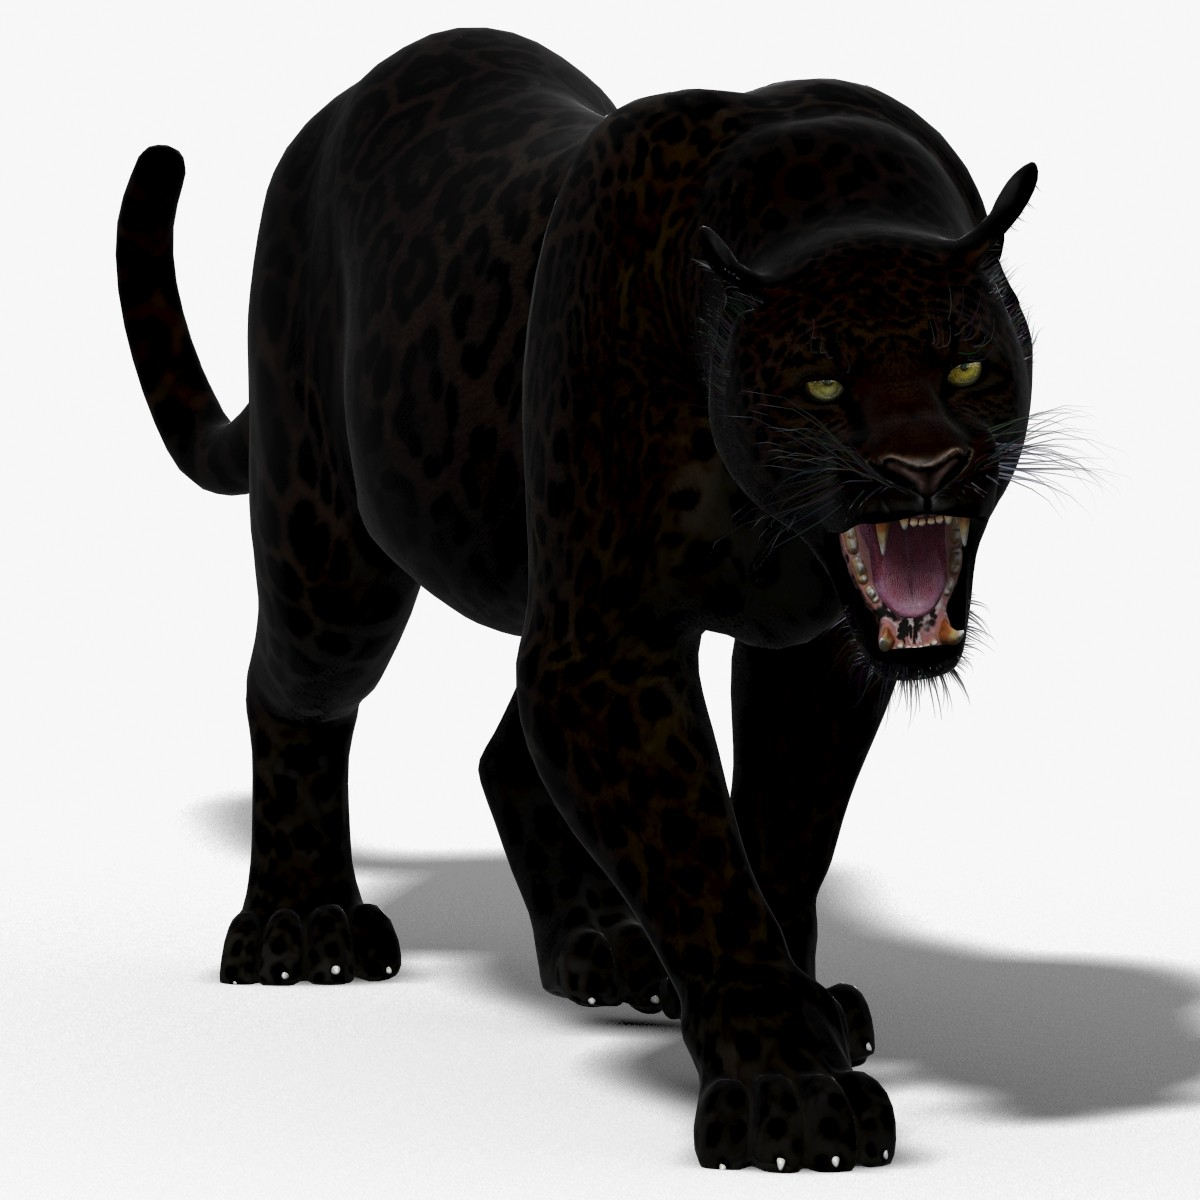 Panther-3D-model-animated-fur-00.jpg